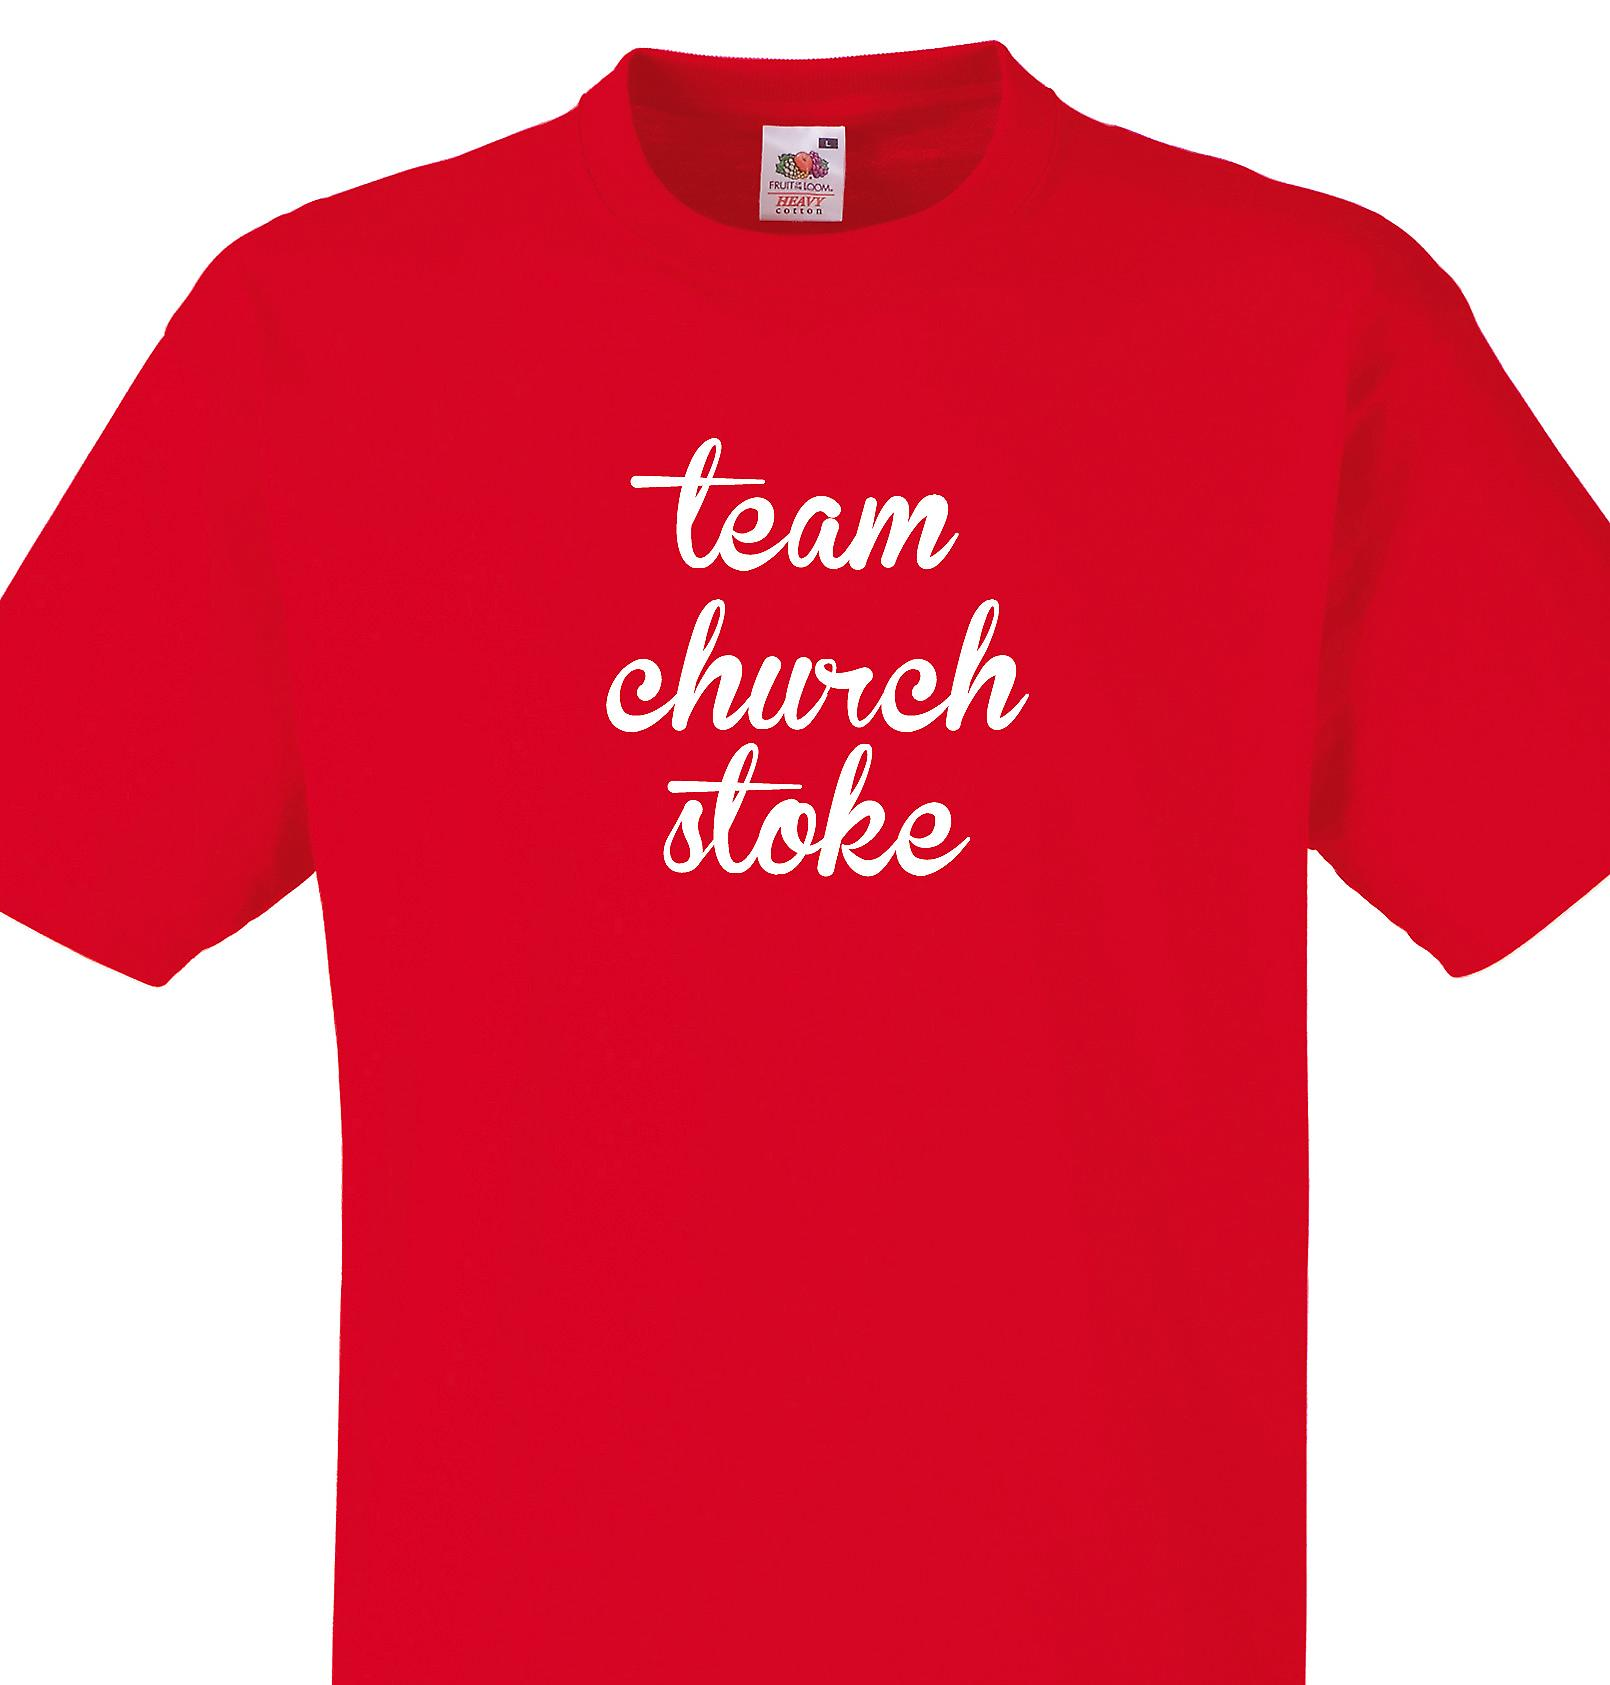 Team Church stoke Red T shirt